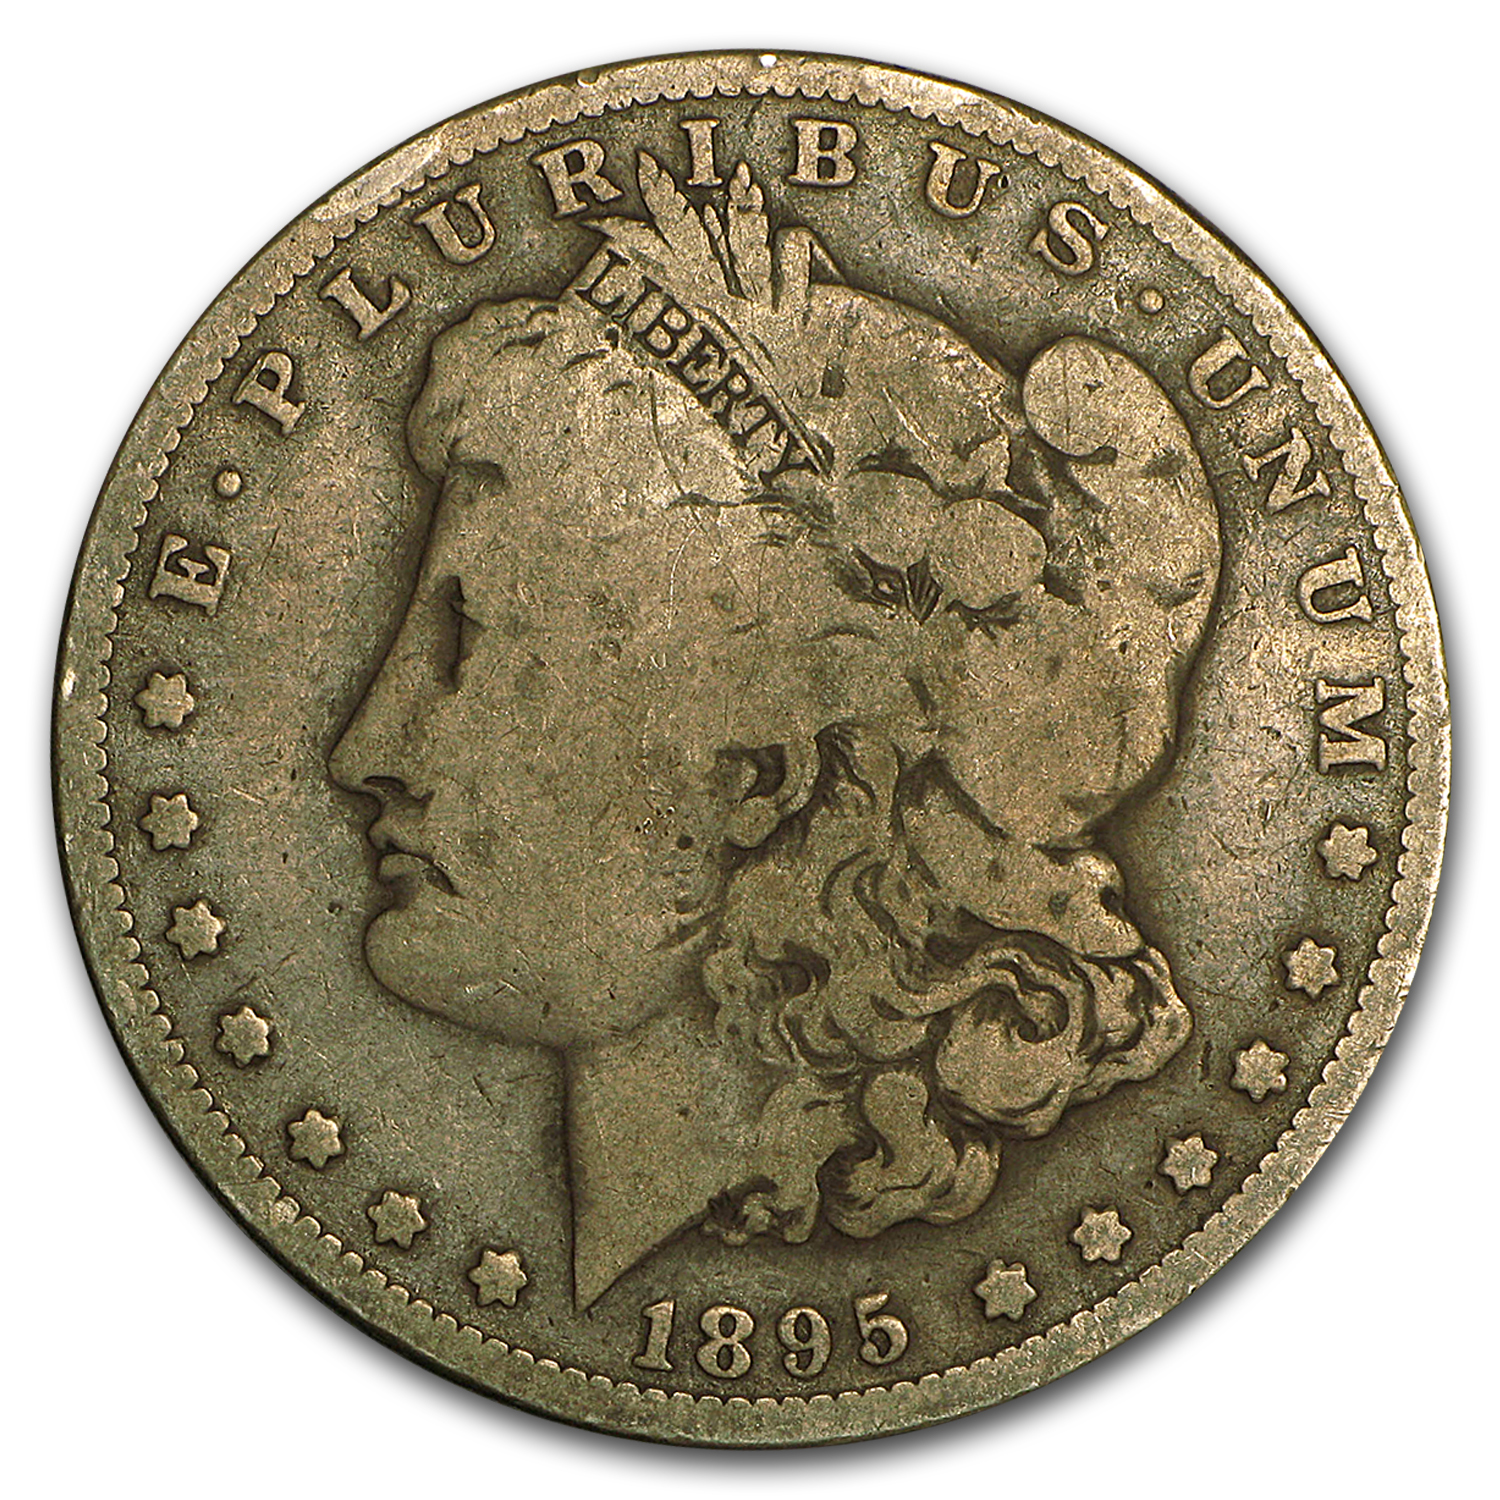 1895-O Morgan Dollar - Good